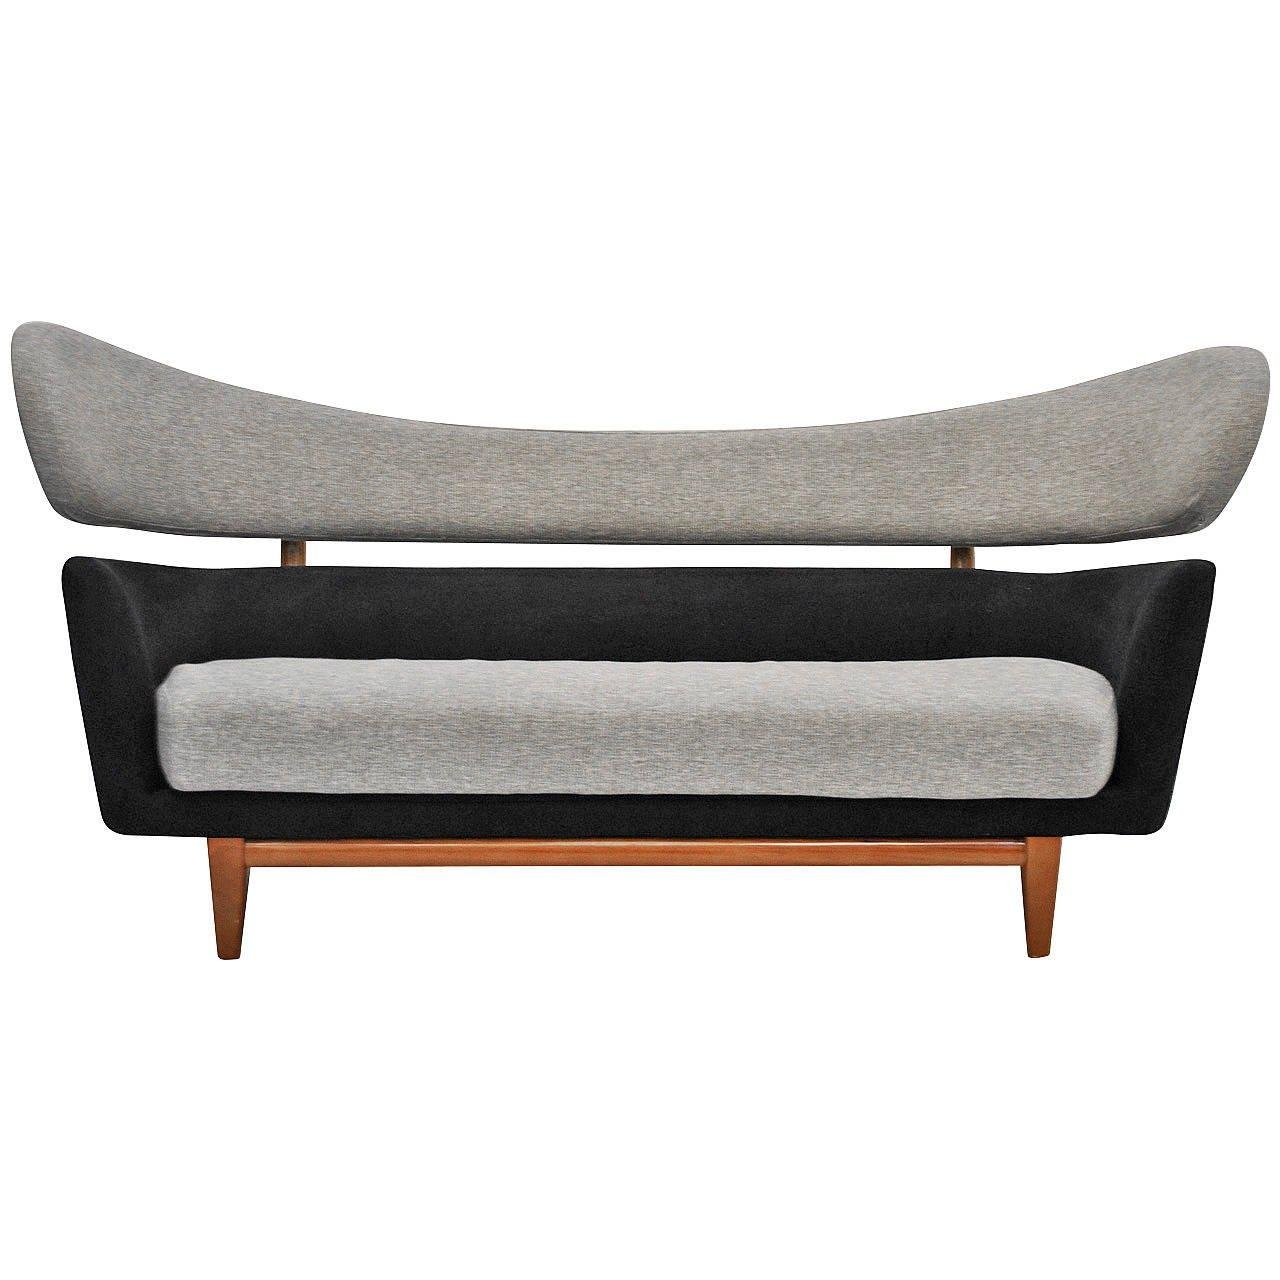 Vintage 'baker' Style Sofa At 1Stdibs Regarding Bench Style Sofas (View 3 of 20)